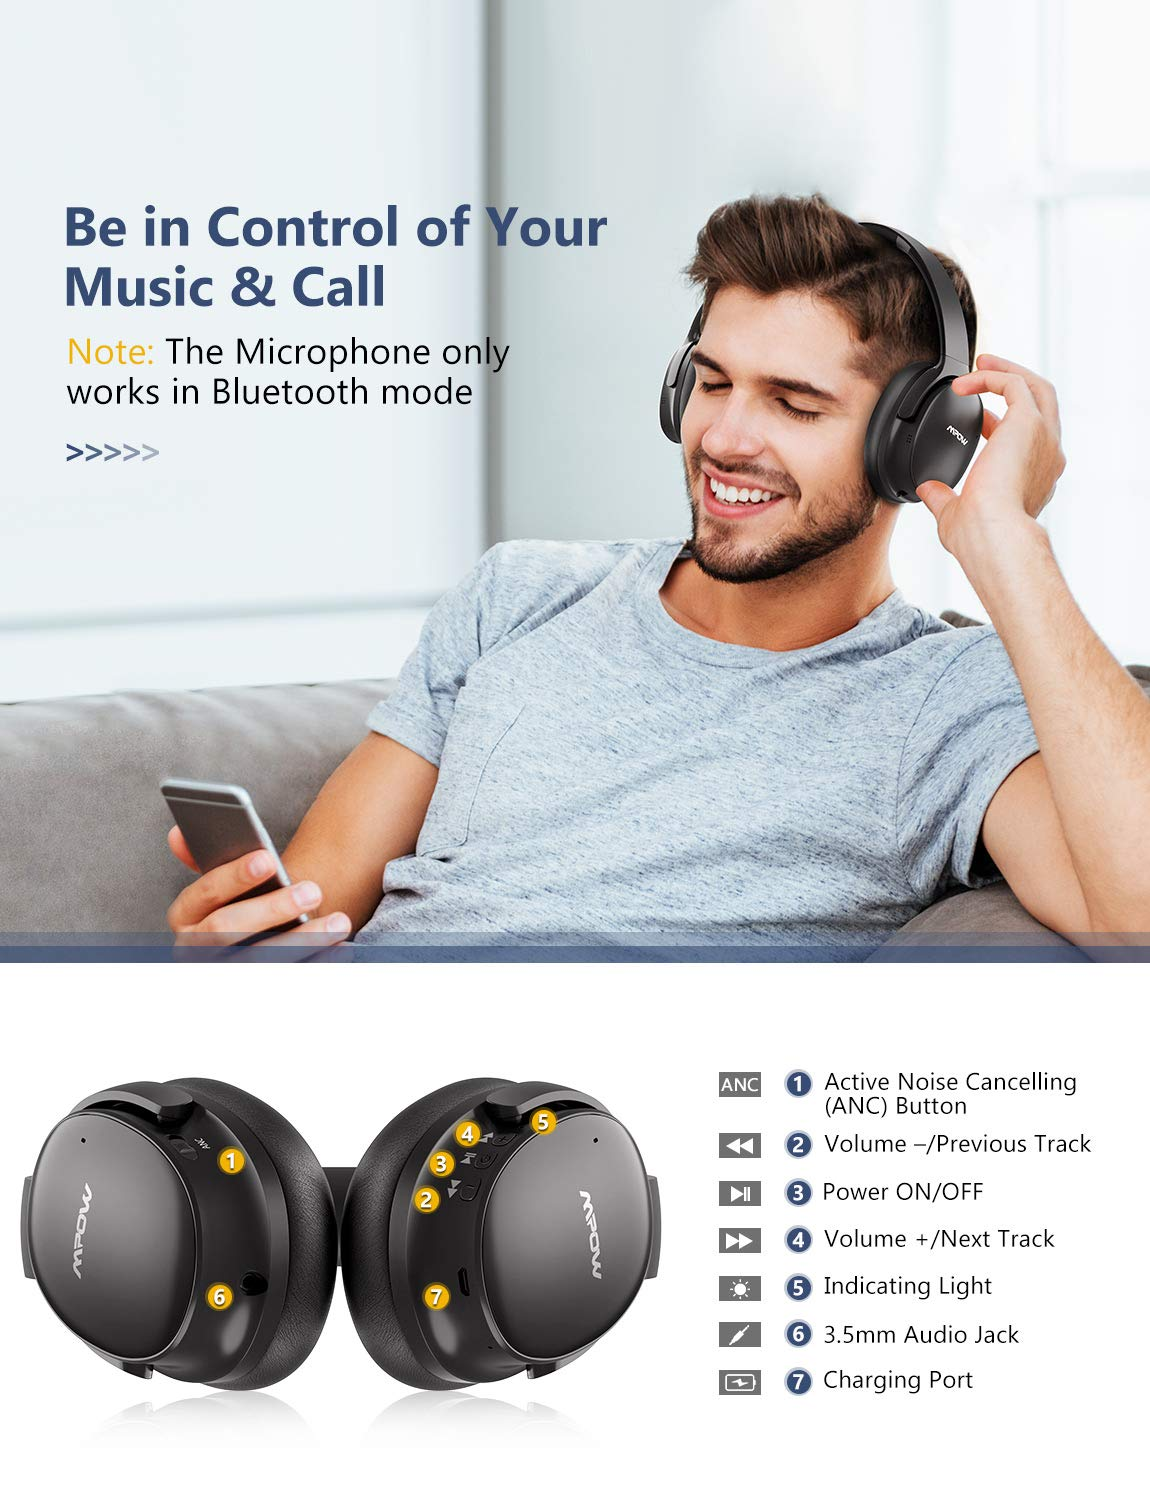 Mpow H10 [2019 Edition] Dual-Mic Active Noise Cancelling Bluetooth Headphones, ANC Over-Ear Wireless Headphones with CVC 6.0 Microphone, Hi-Fi Deep Bass, Foldable Headset for Travel/Work by Mpow (Image #5)